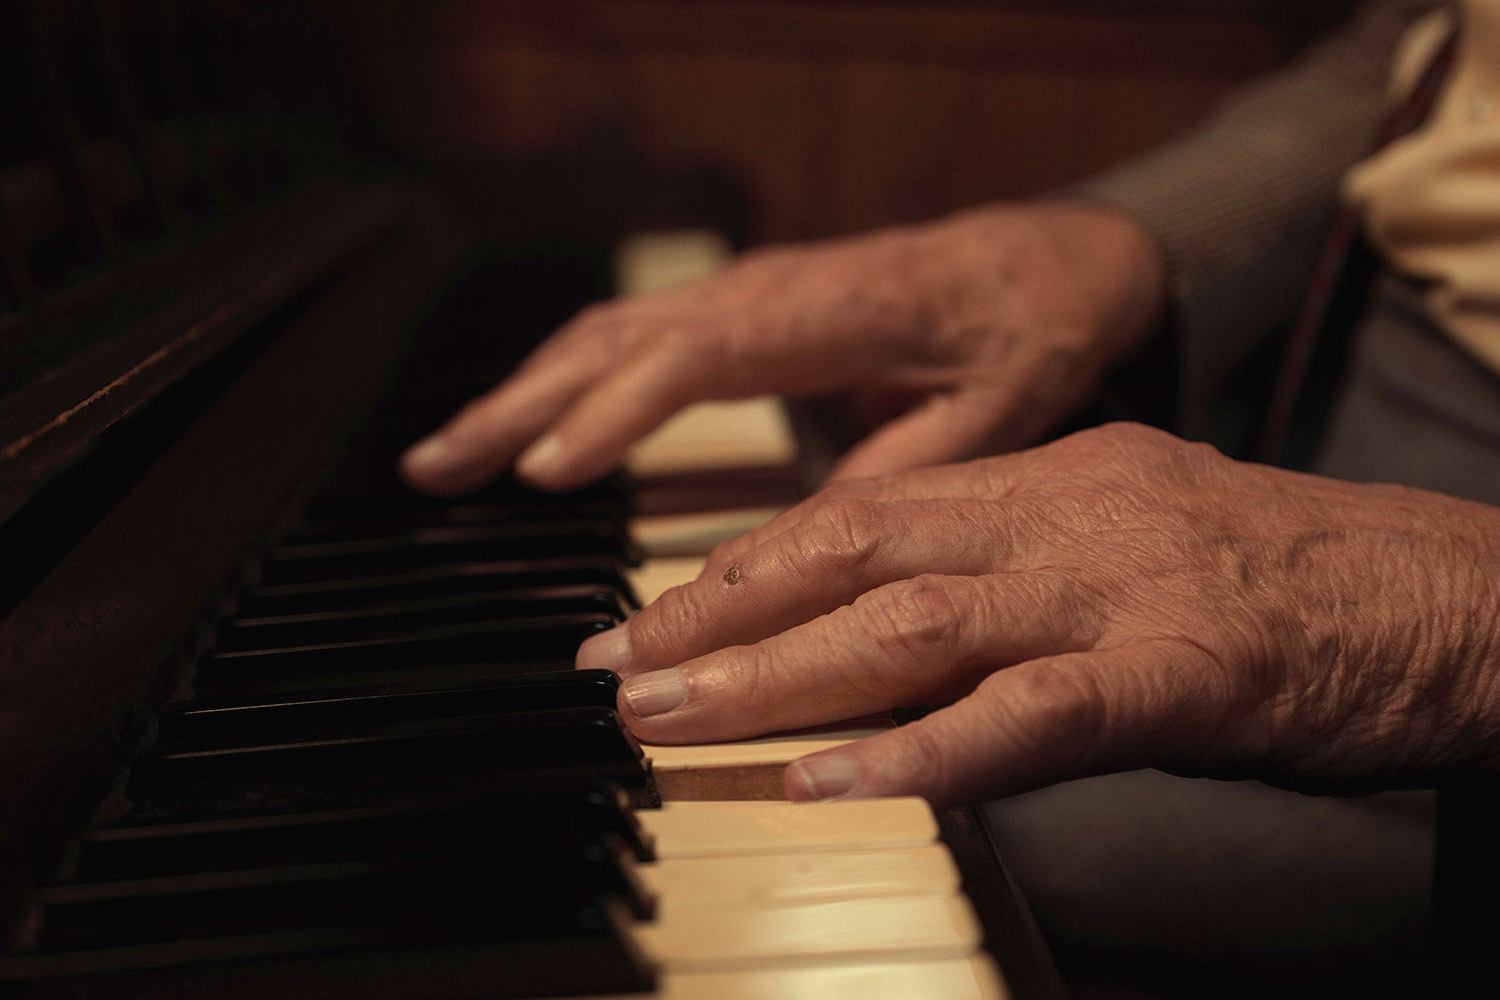 Hands at the piano. Image from Last of the Old Crooners, Palm Tree pub by Tom Oldham